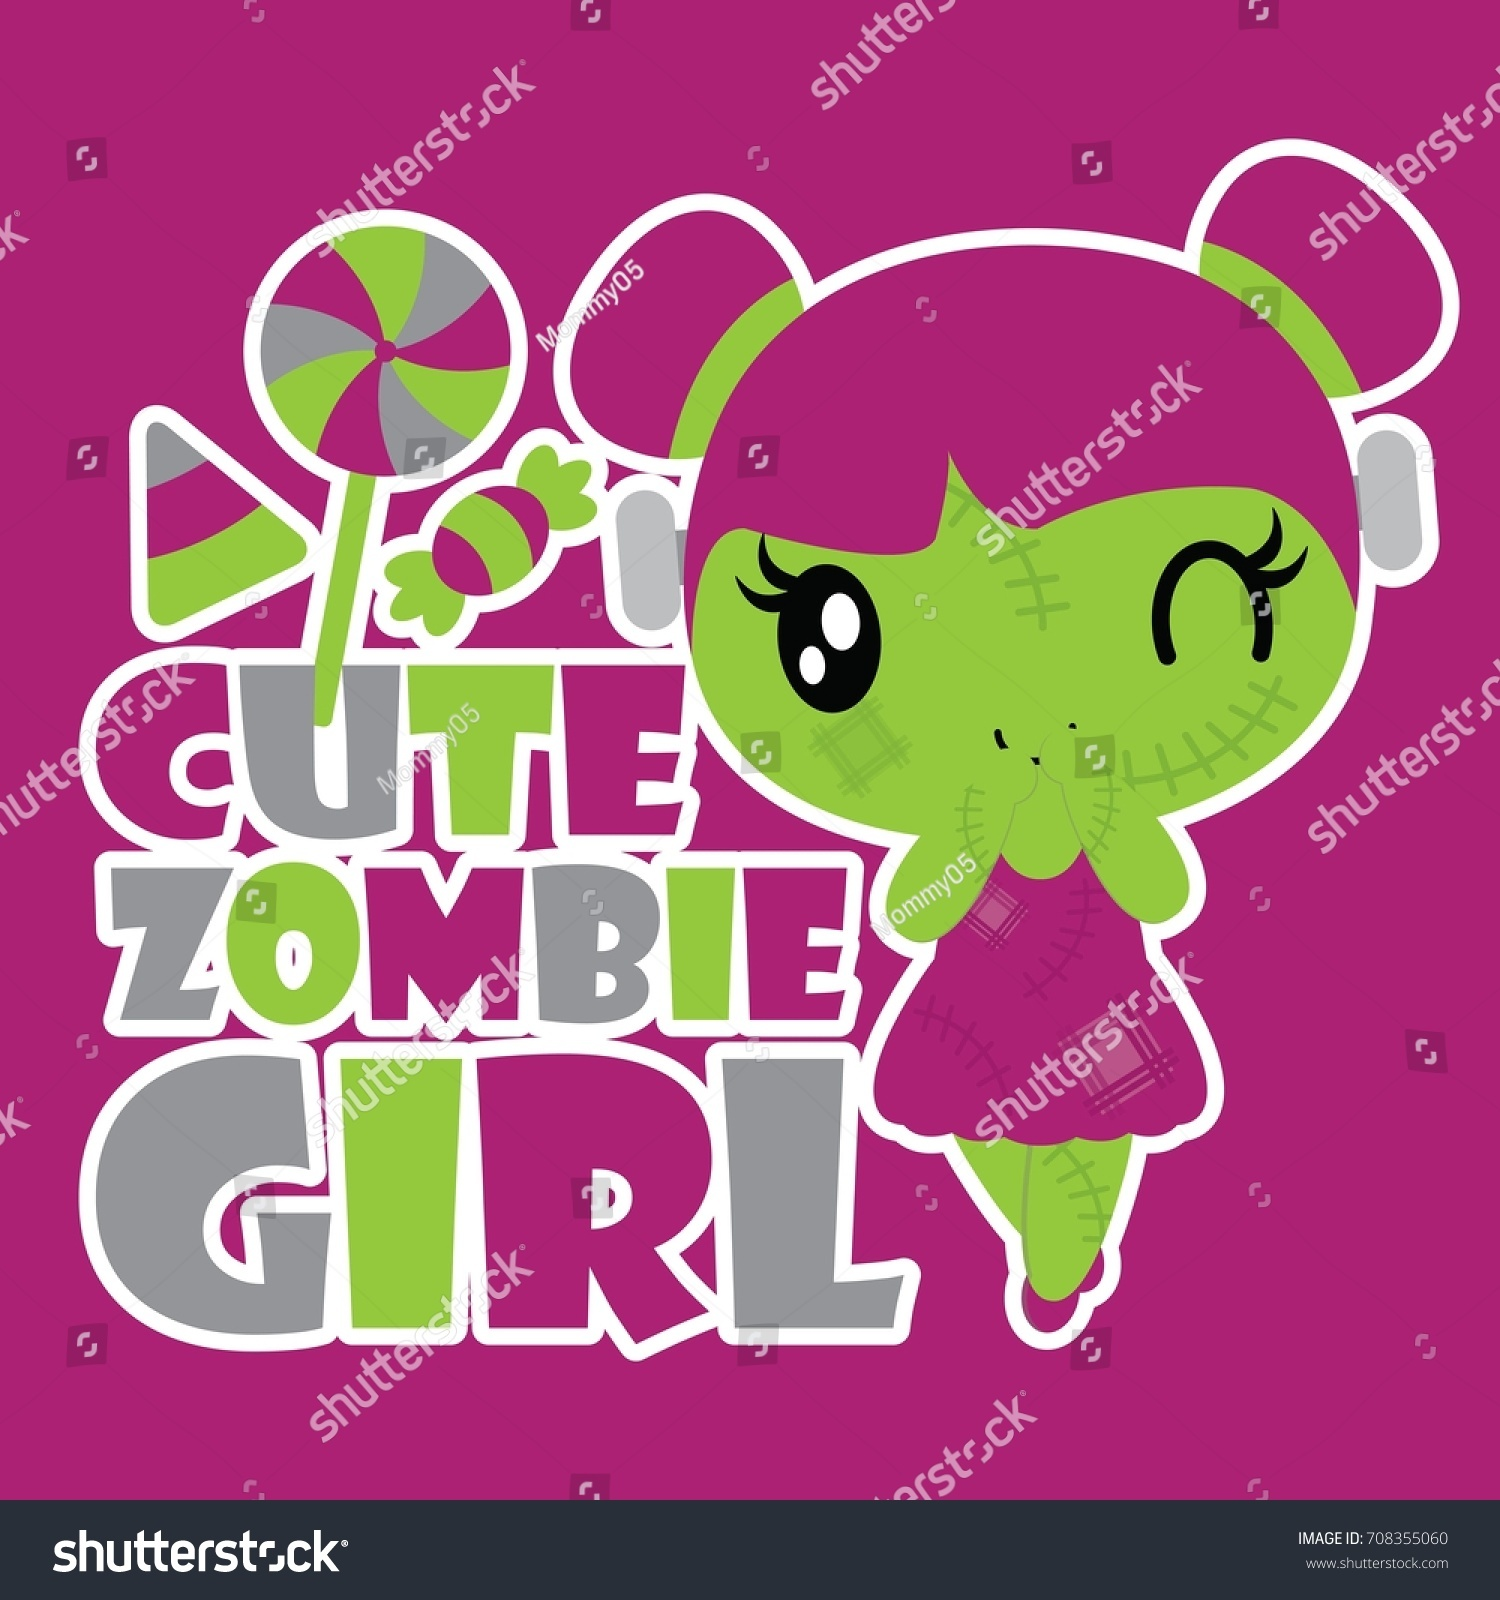 Best Wallpaper Halloween Pink - stock-vector-cute-zombie-girl-with-colorful-candies-vector-cartoon-illustration-for-halloween-card-design-708355060  Image_151130.jpg